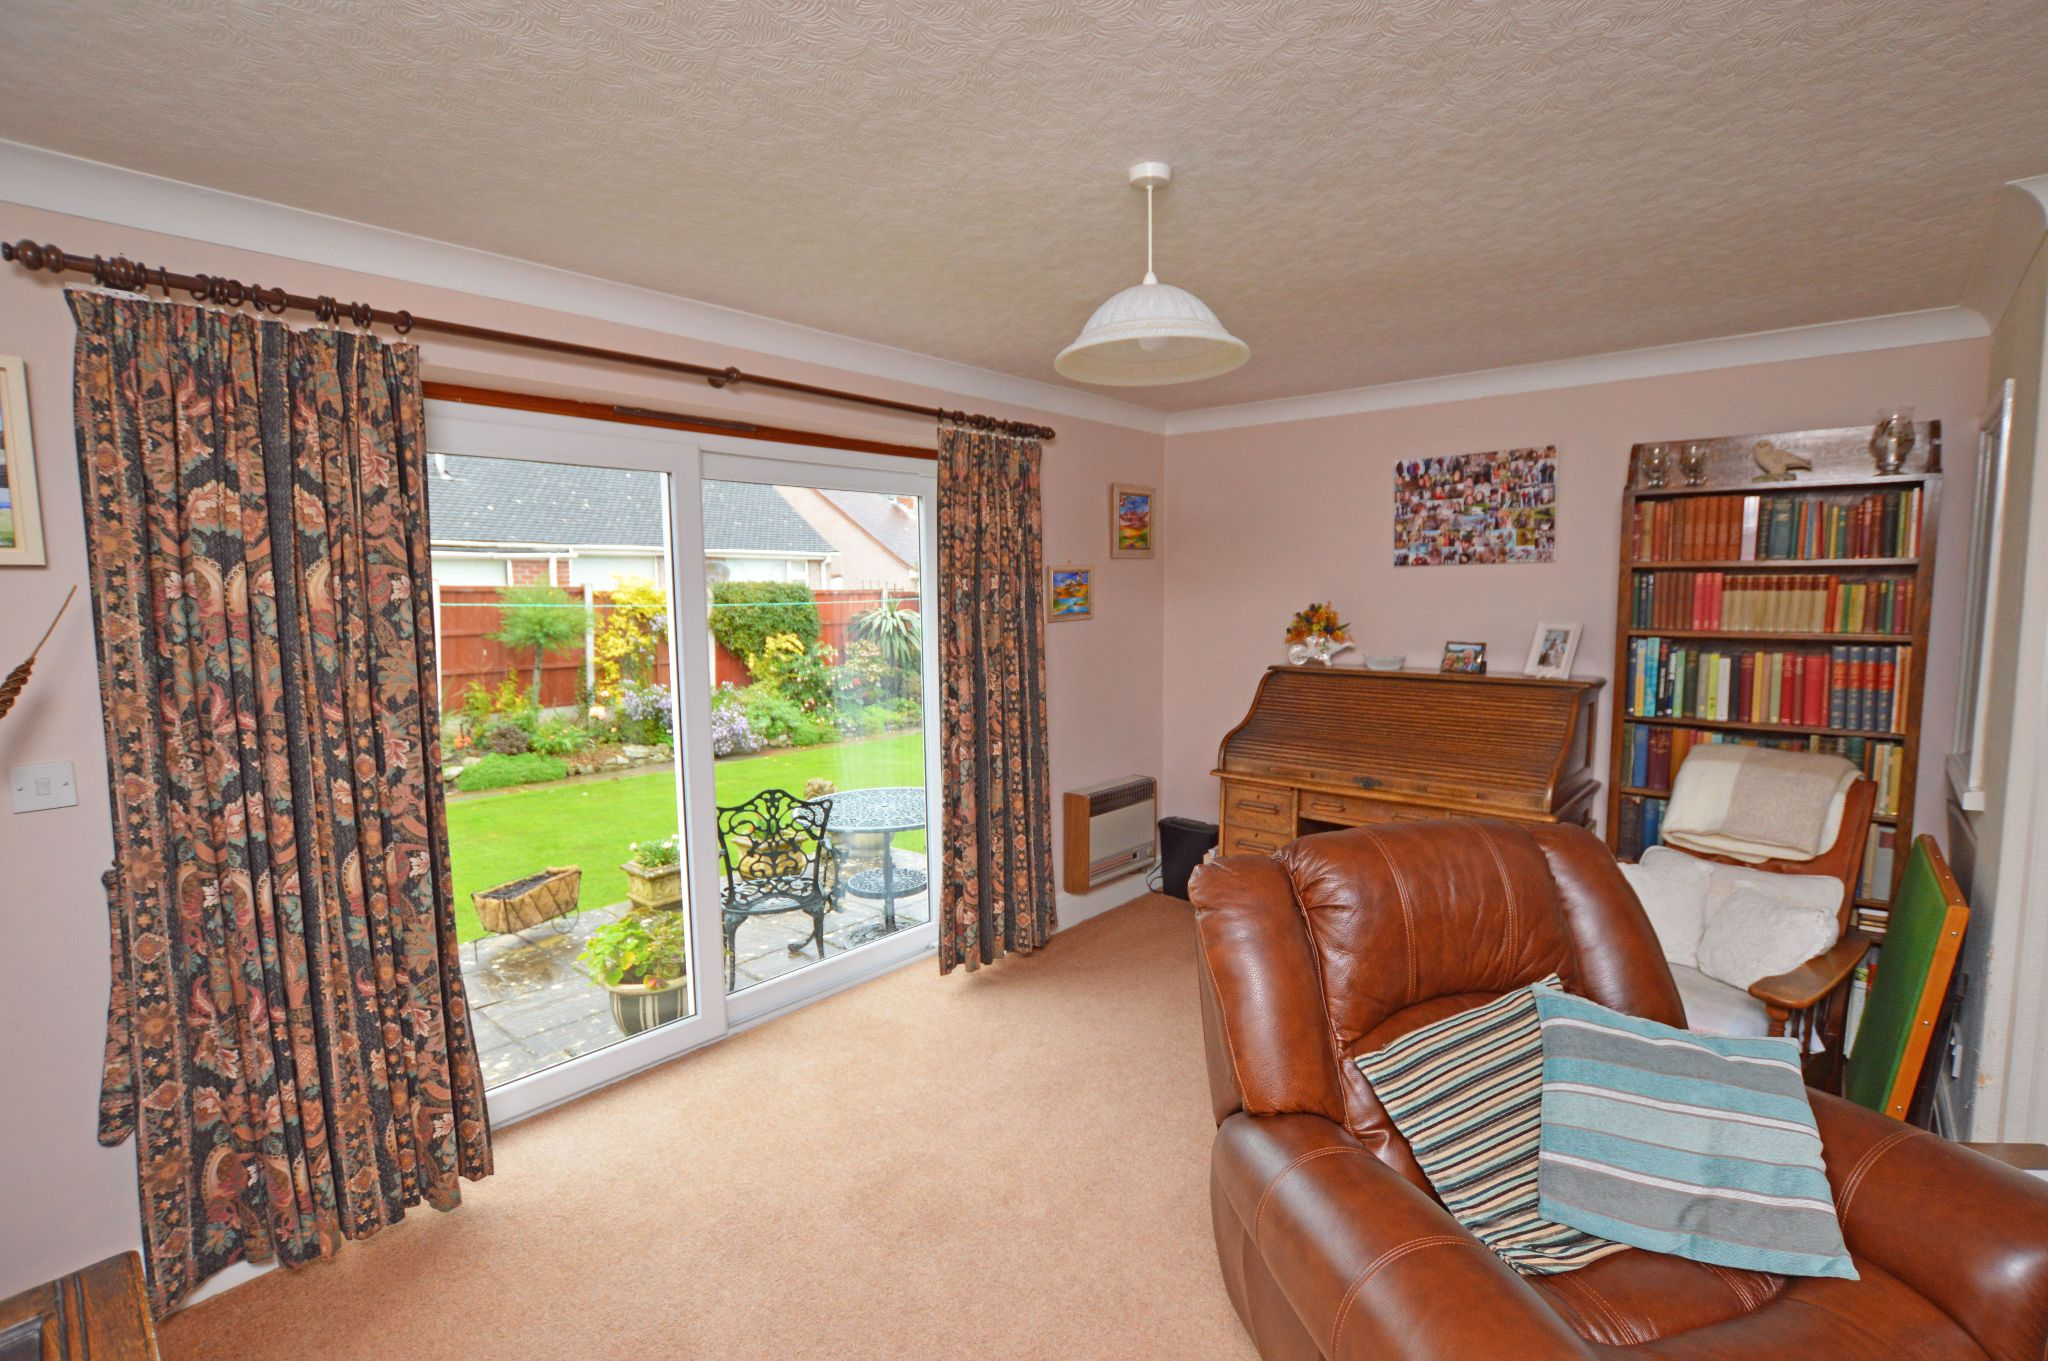 4 bedroom detached bungalow For Sale in Abergele - Dining Area